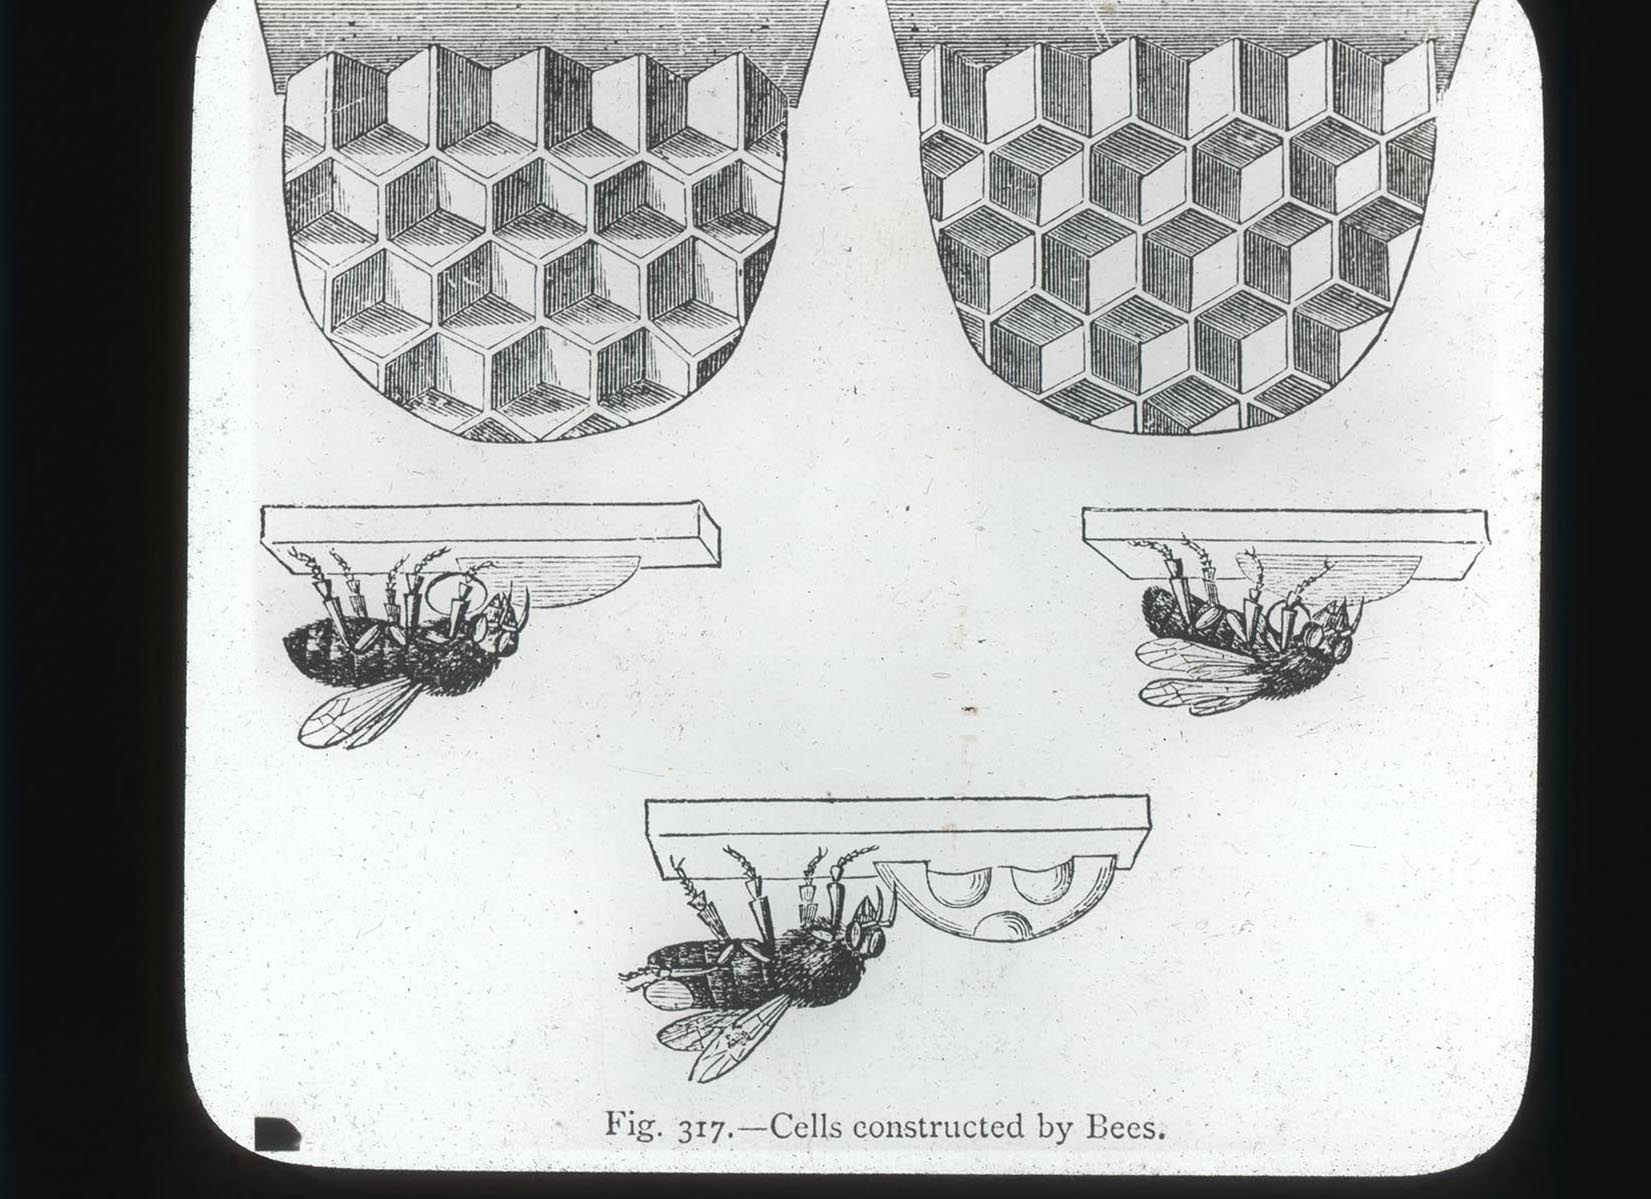 Cells Constructed by Bees